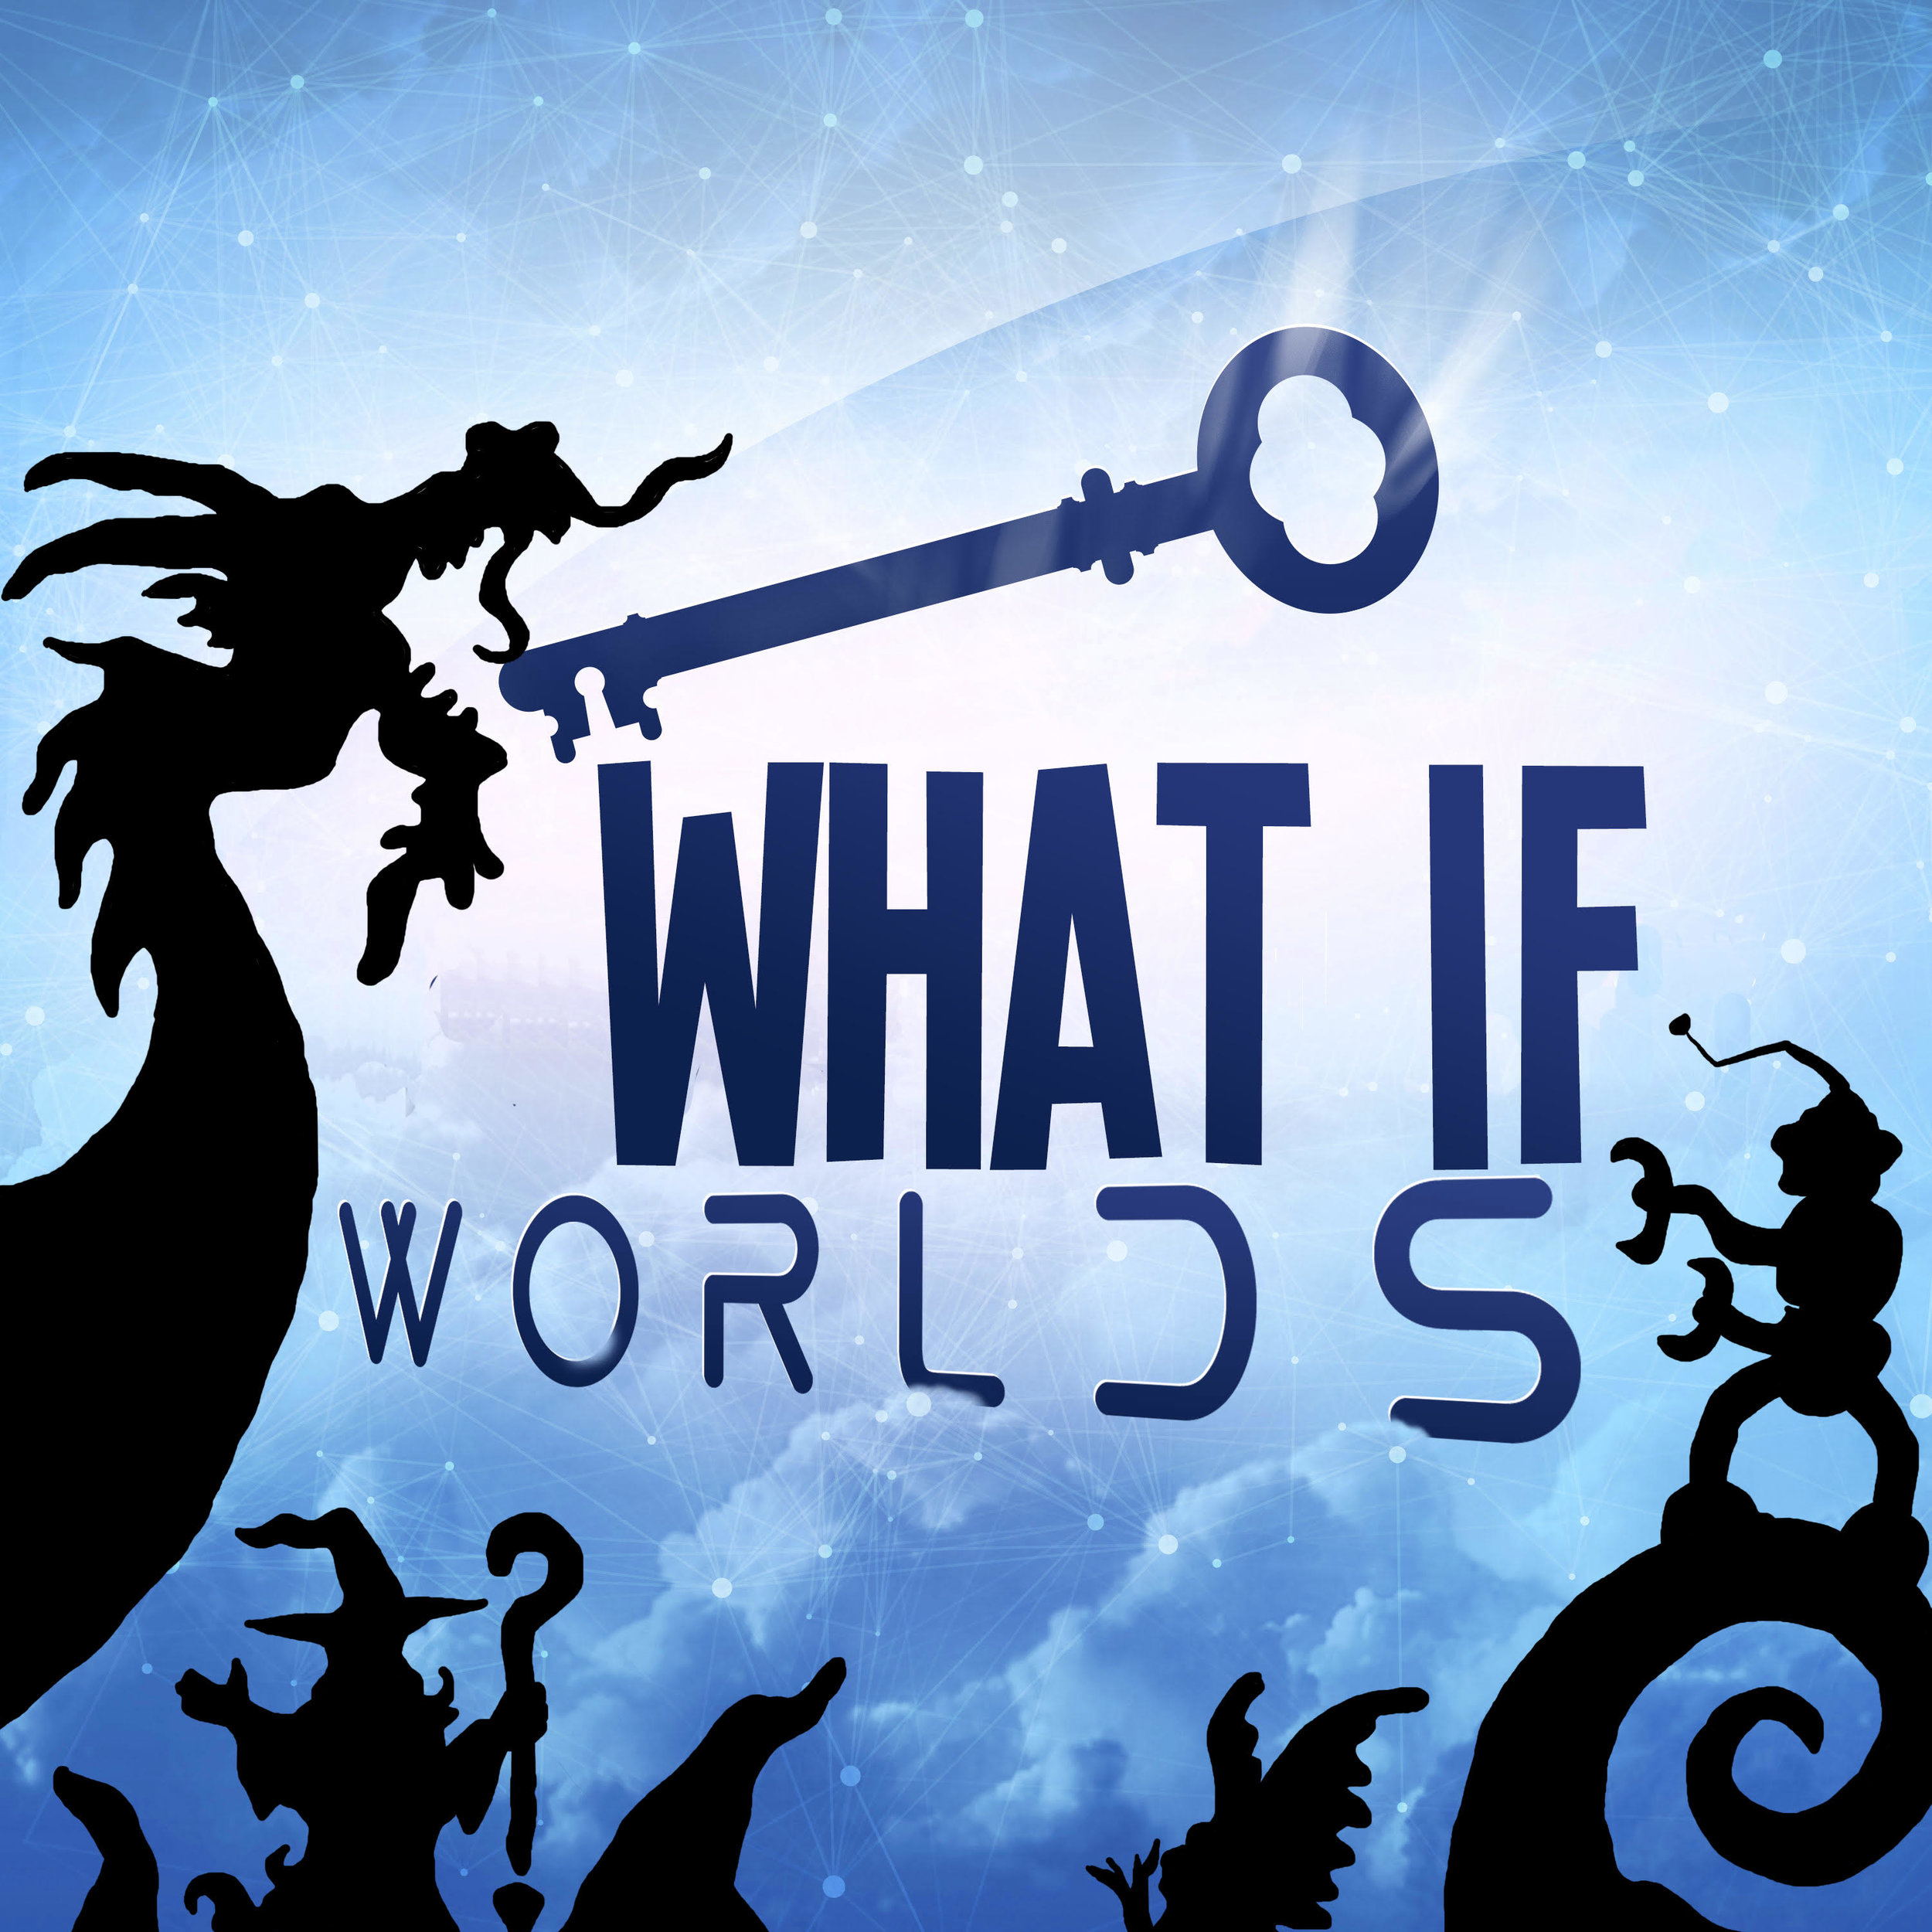 Imaginary What If Worlds.jpg